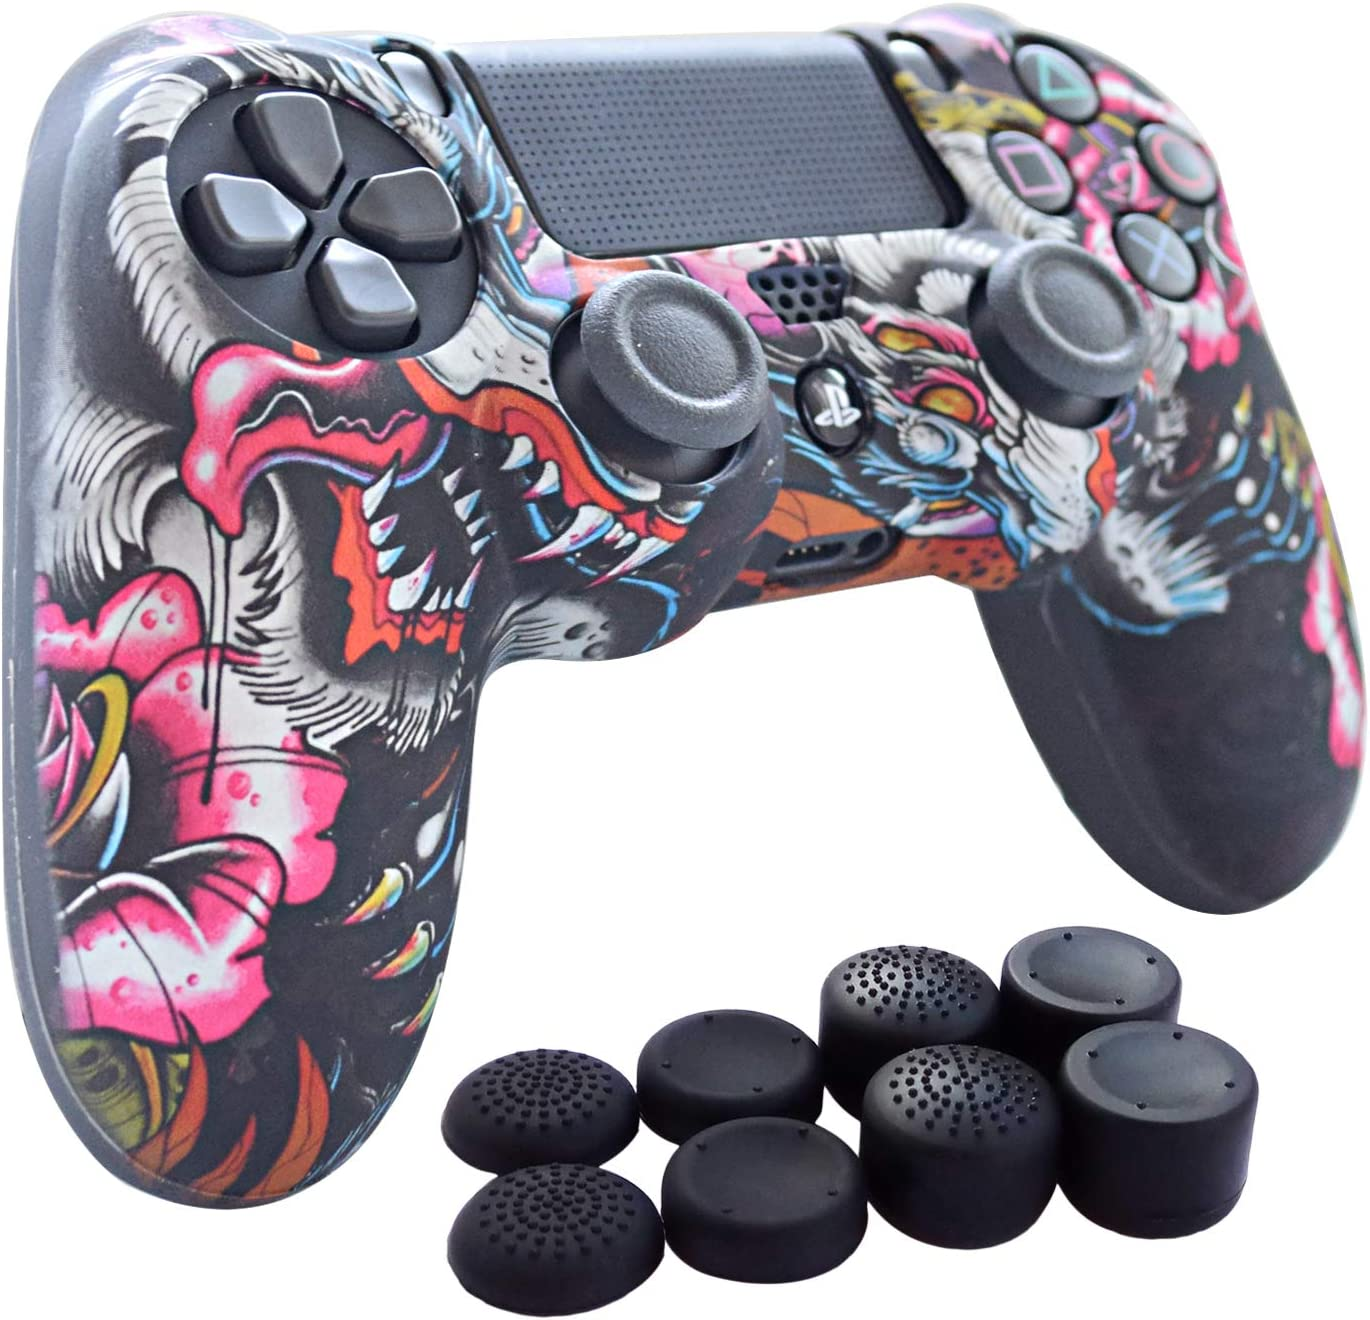 PS4 Controller Grip Max Regular dealer 72% OFF Hikfly Skin Silicone Cover Gel Ca